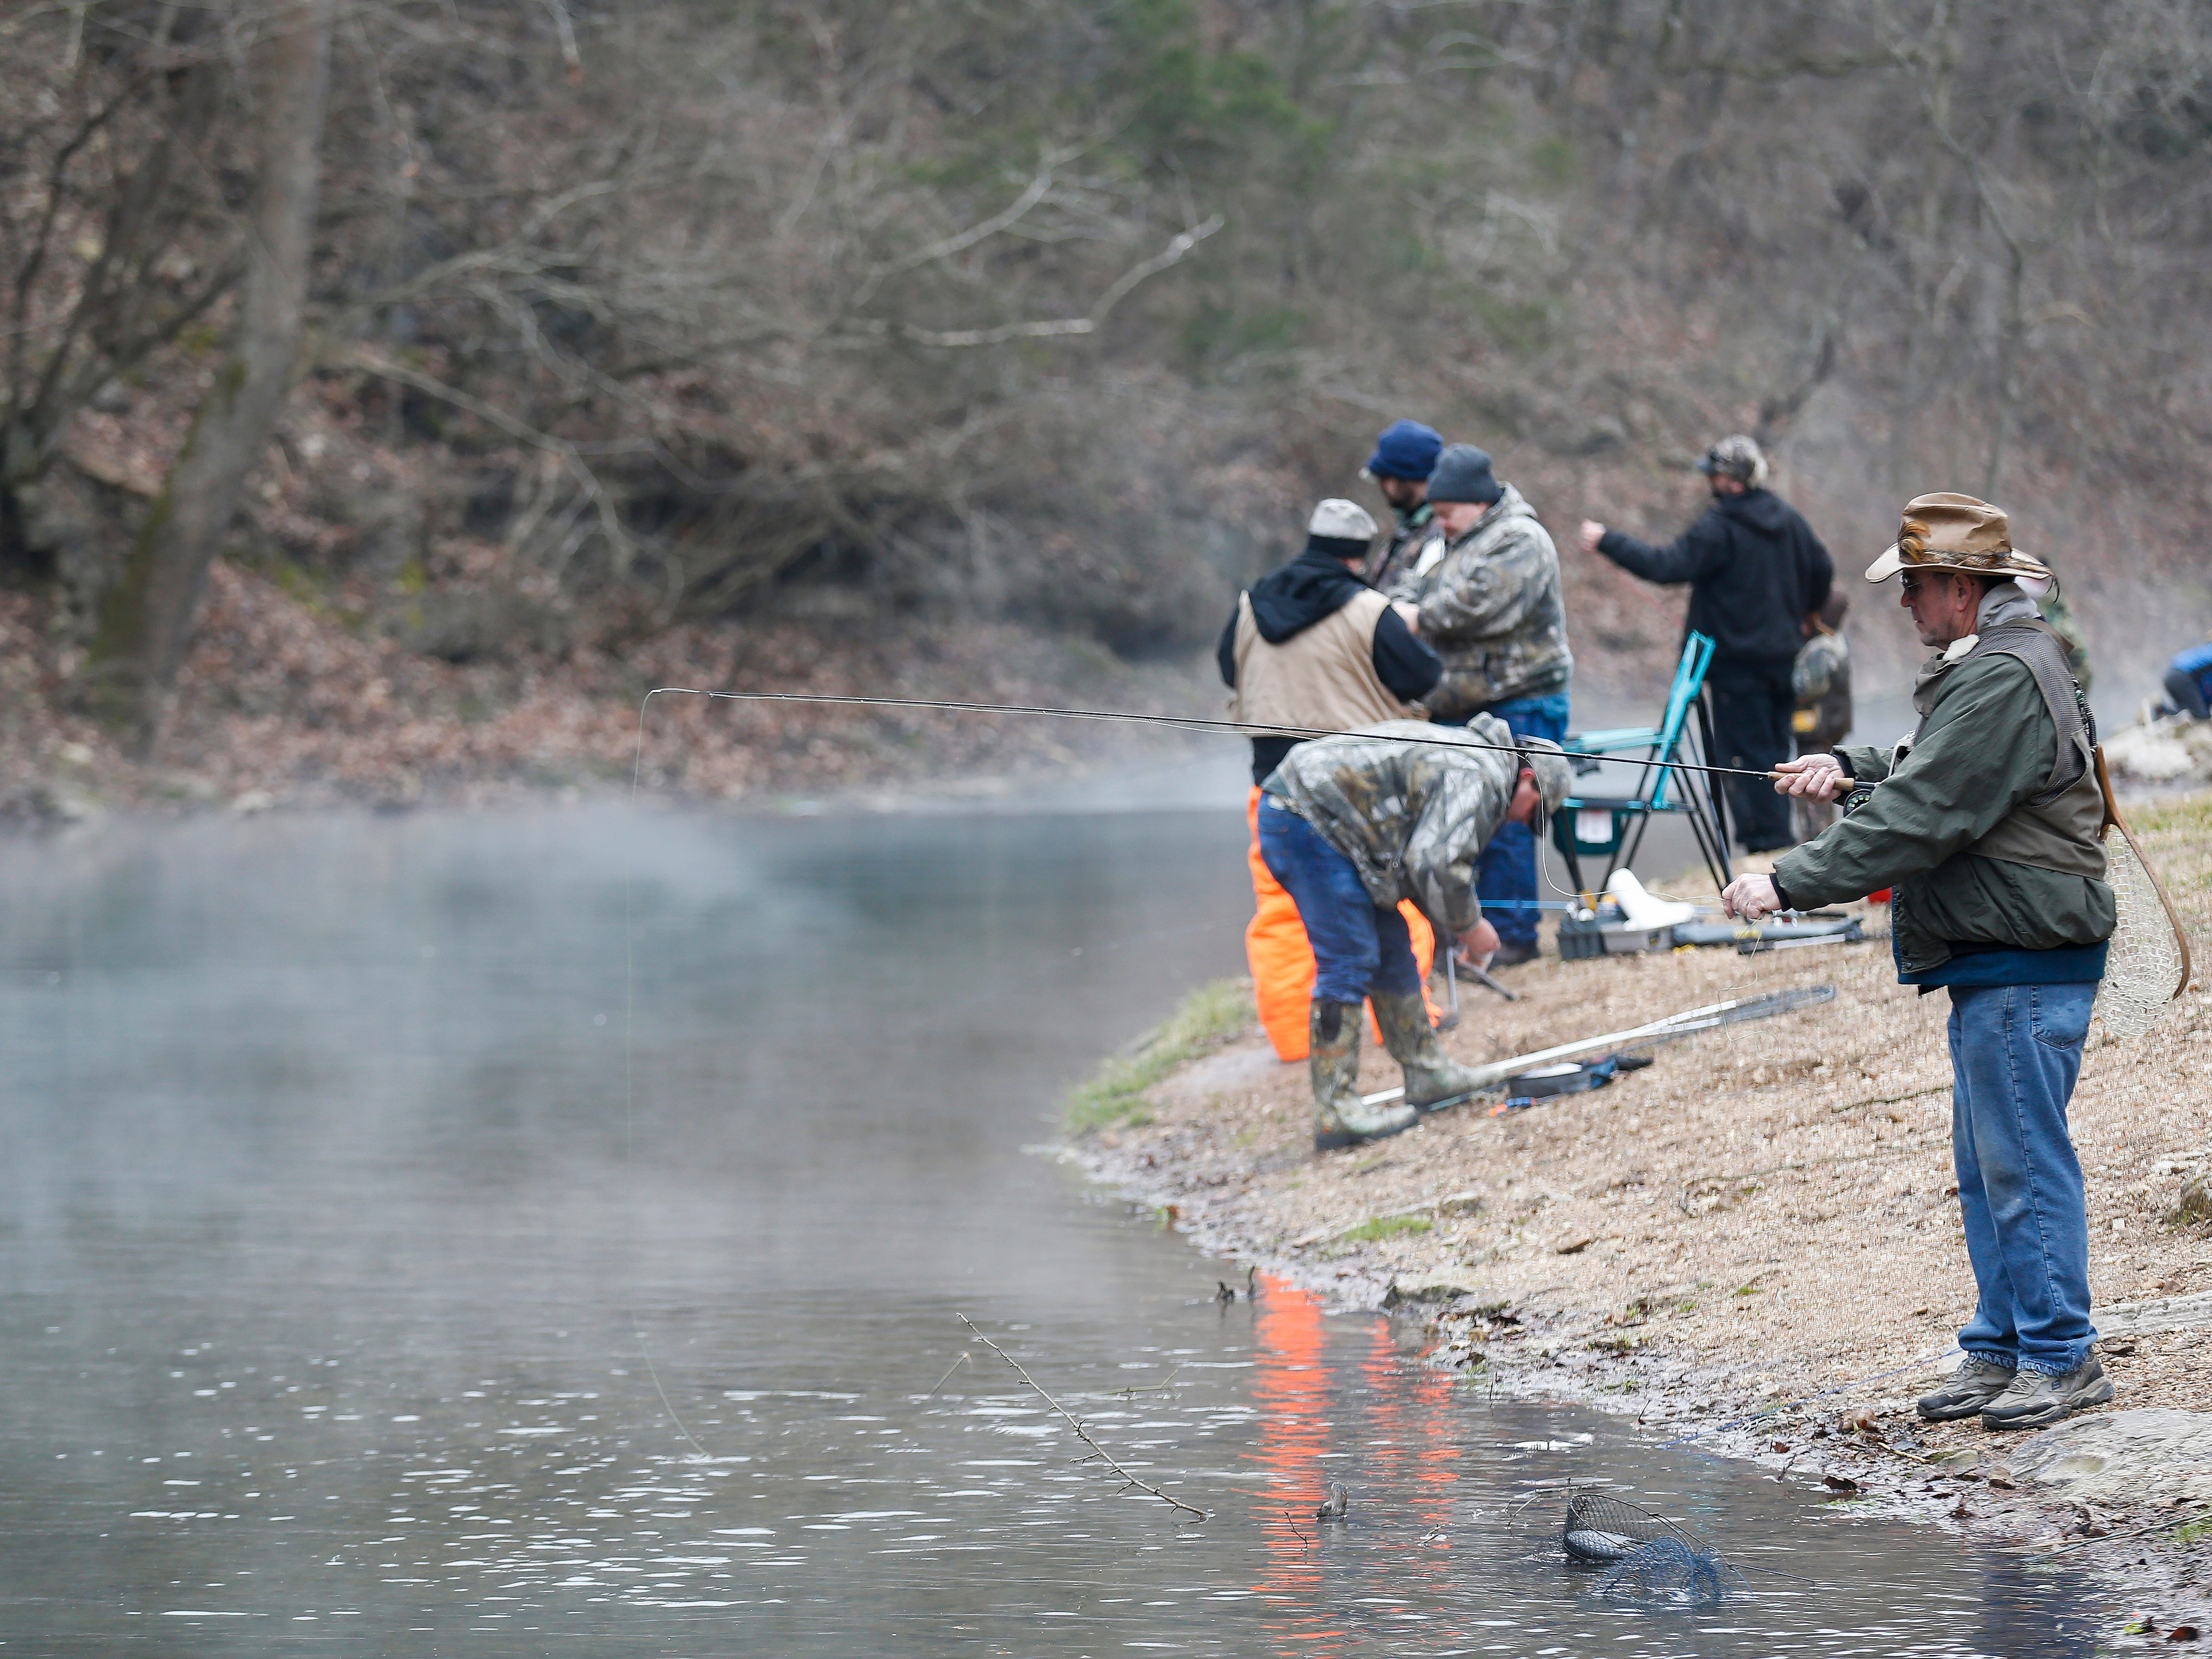 Scenes from opening day of trout season at Roaring River State Park on Friday, Mar. 1, 2019.